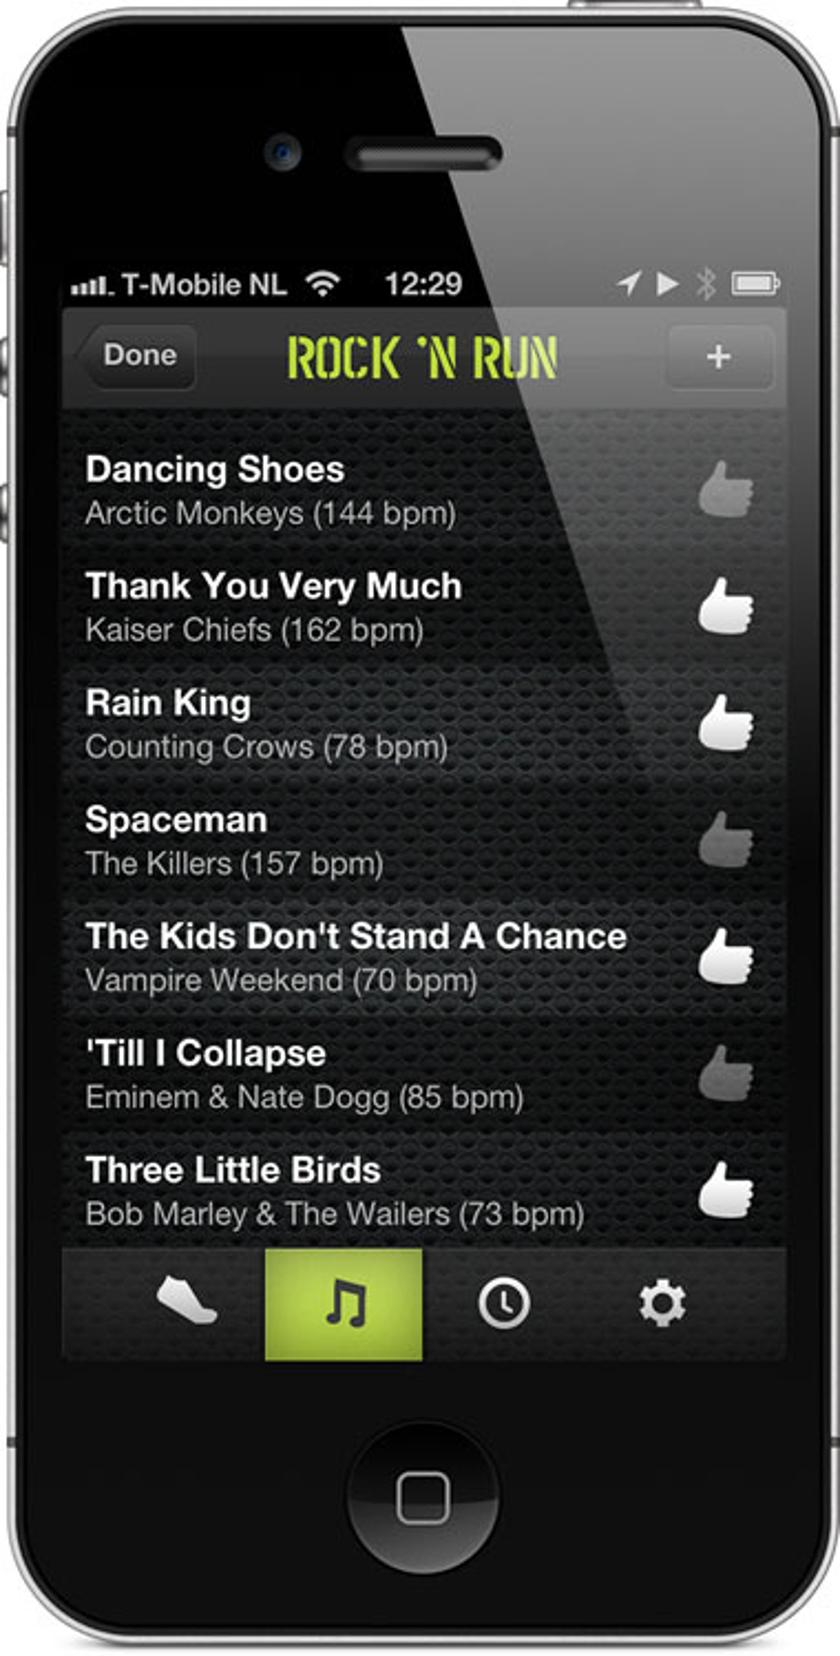 Cruise Control app changes songs' tempo to match runners